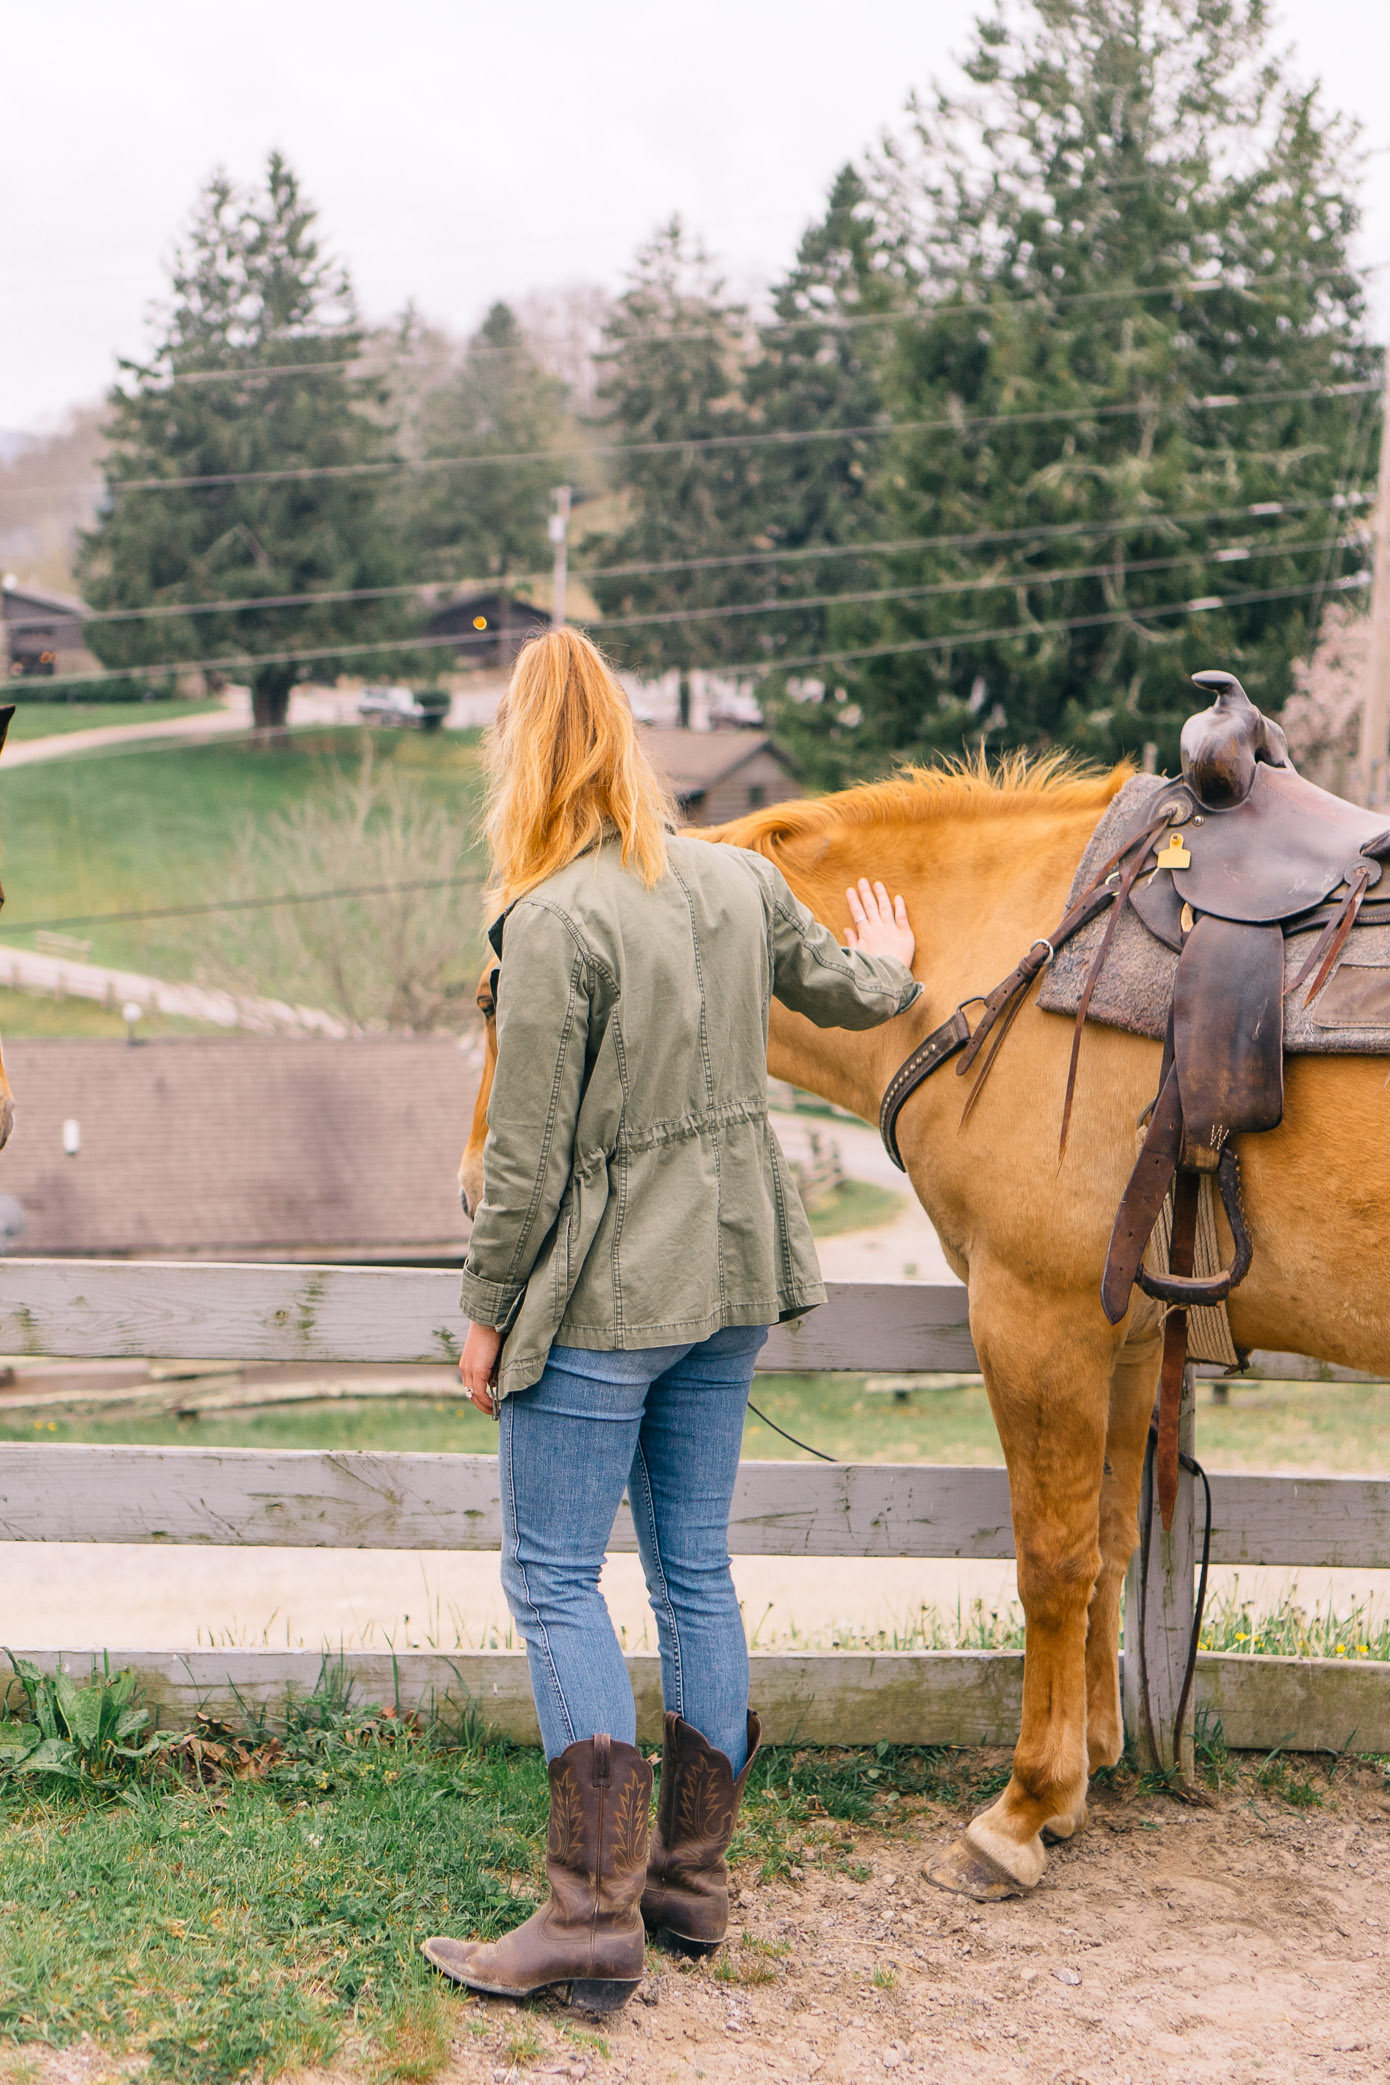 Cataloochee Ranch Review | Where to Go Horseback Riding in NC Mountains | Louella Reese Life & Style Blog